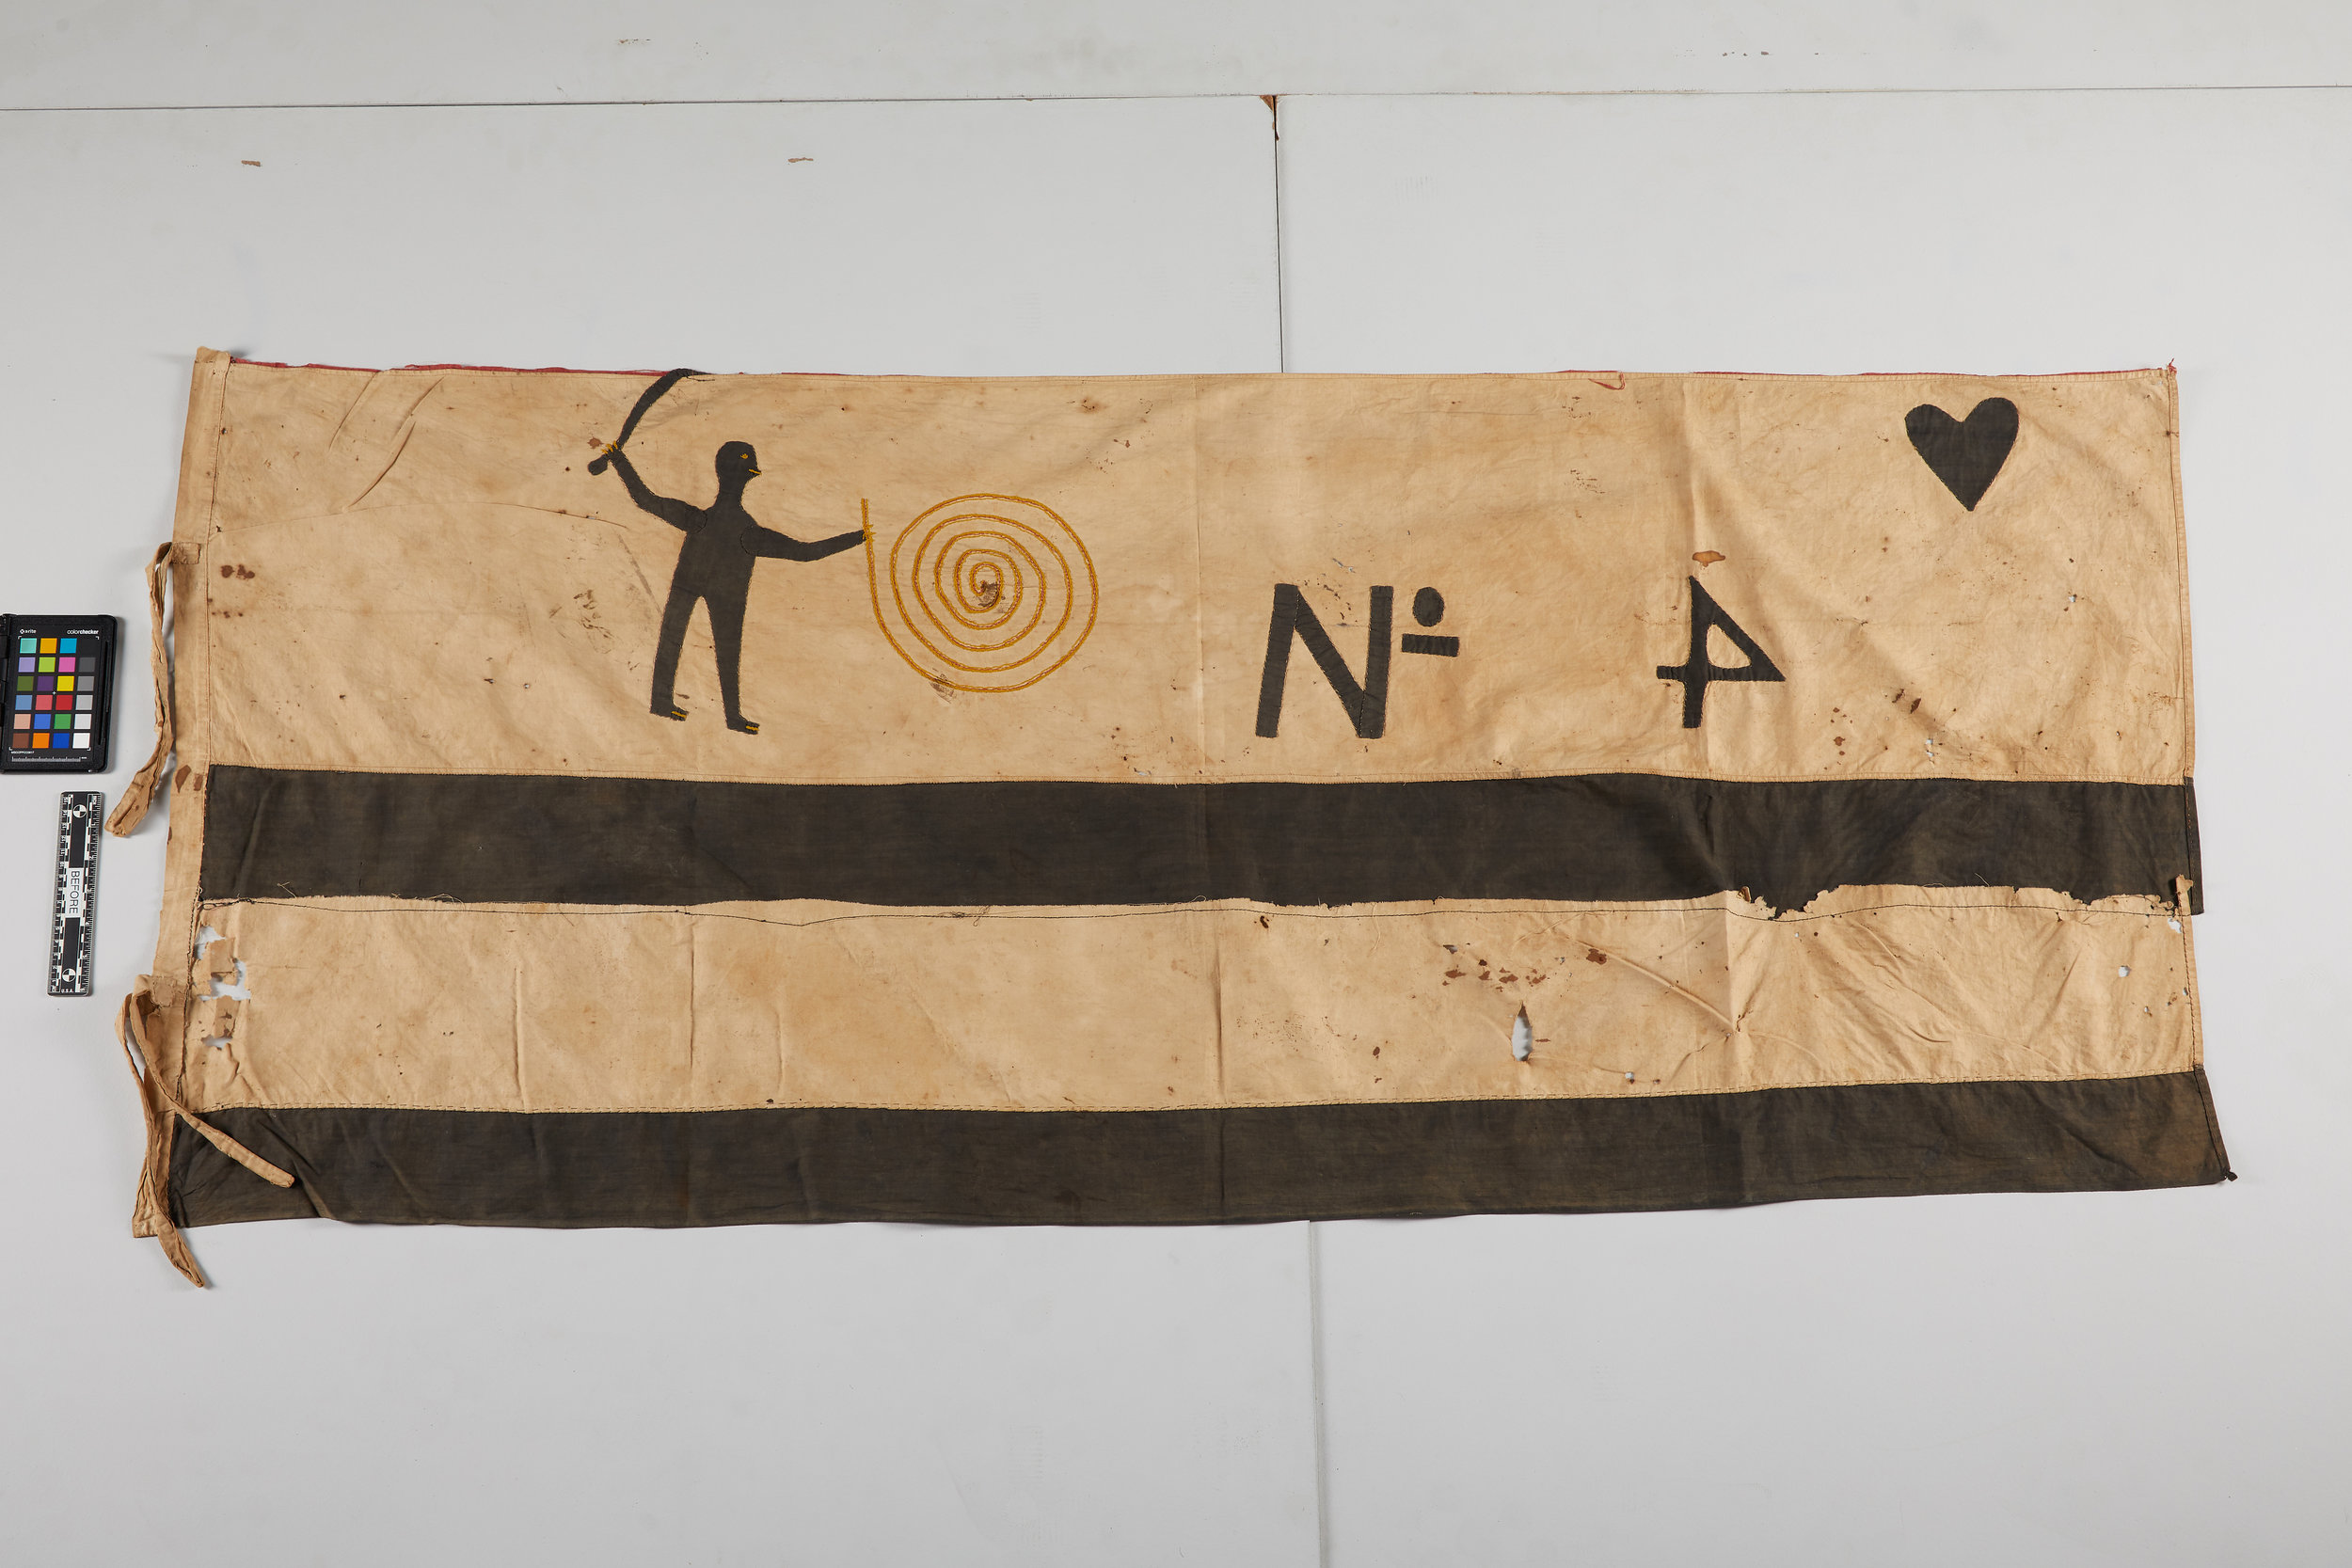 This flag features symbols and a human figure, along with bold horizontal stripes, 27.5 x 61.25 inches.